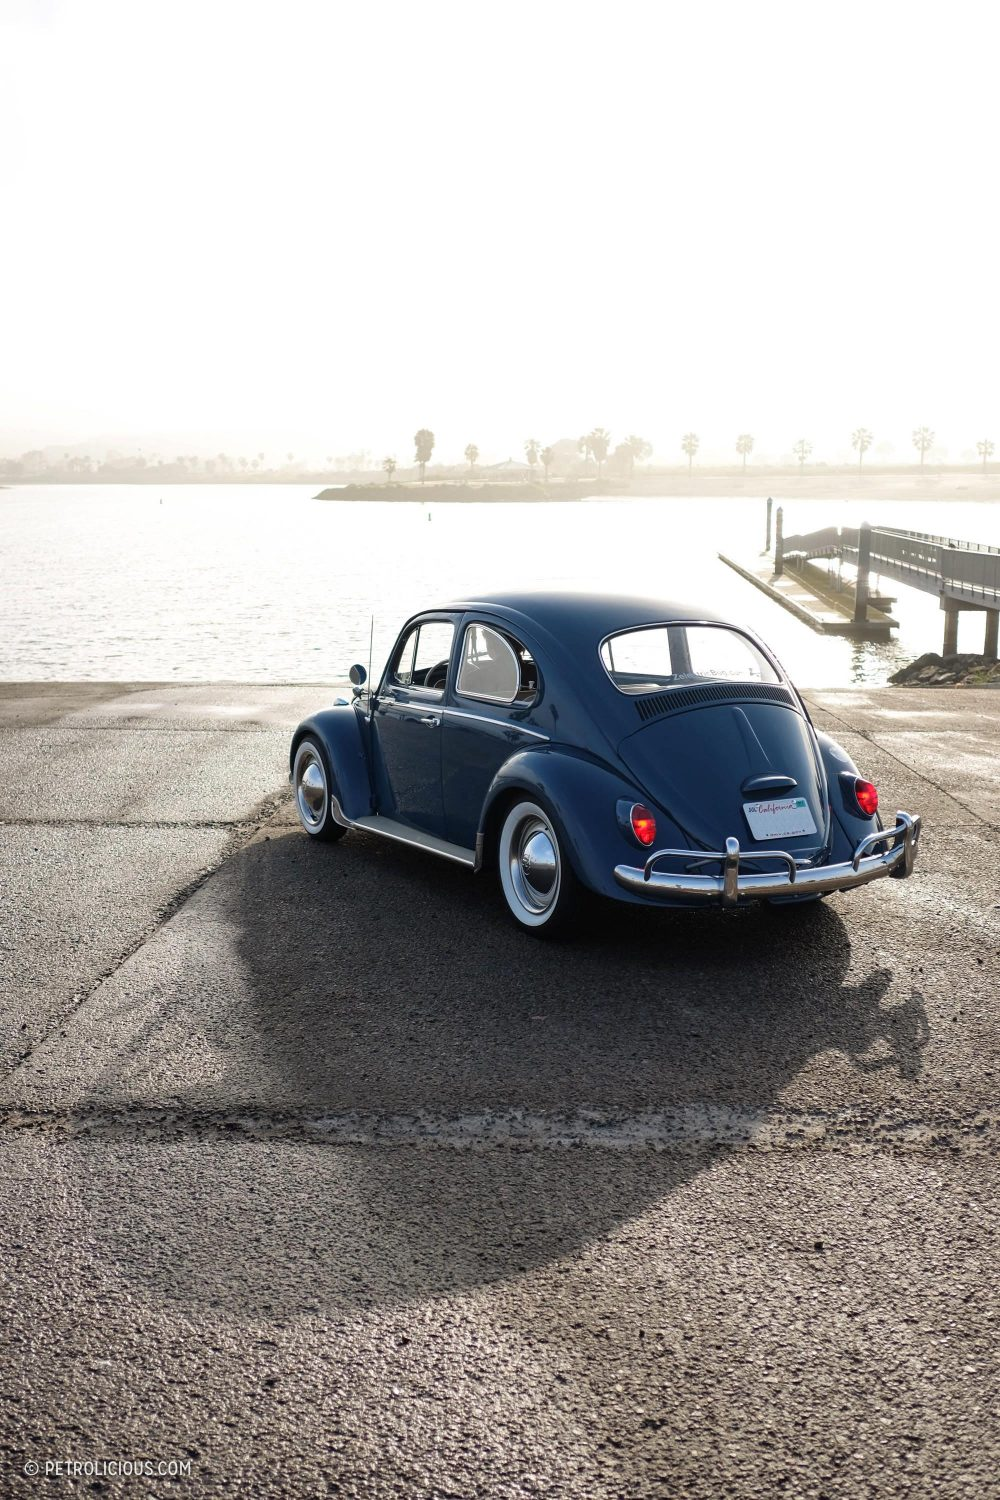 It's Zelectric: Why This Volkswagen Beetle Could Be The Perfect EV